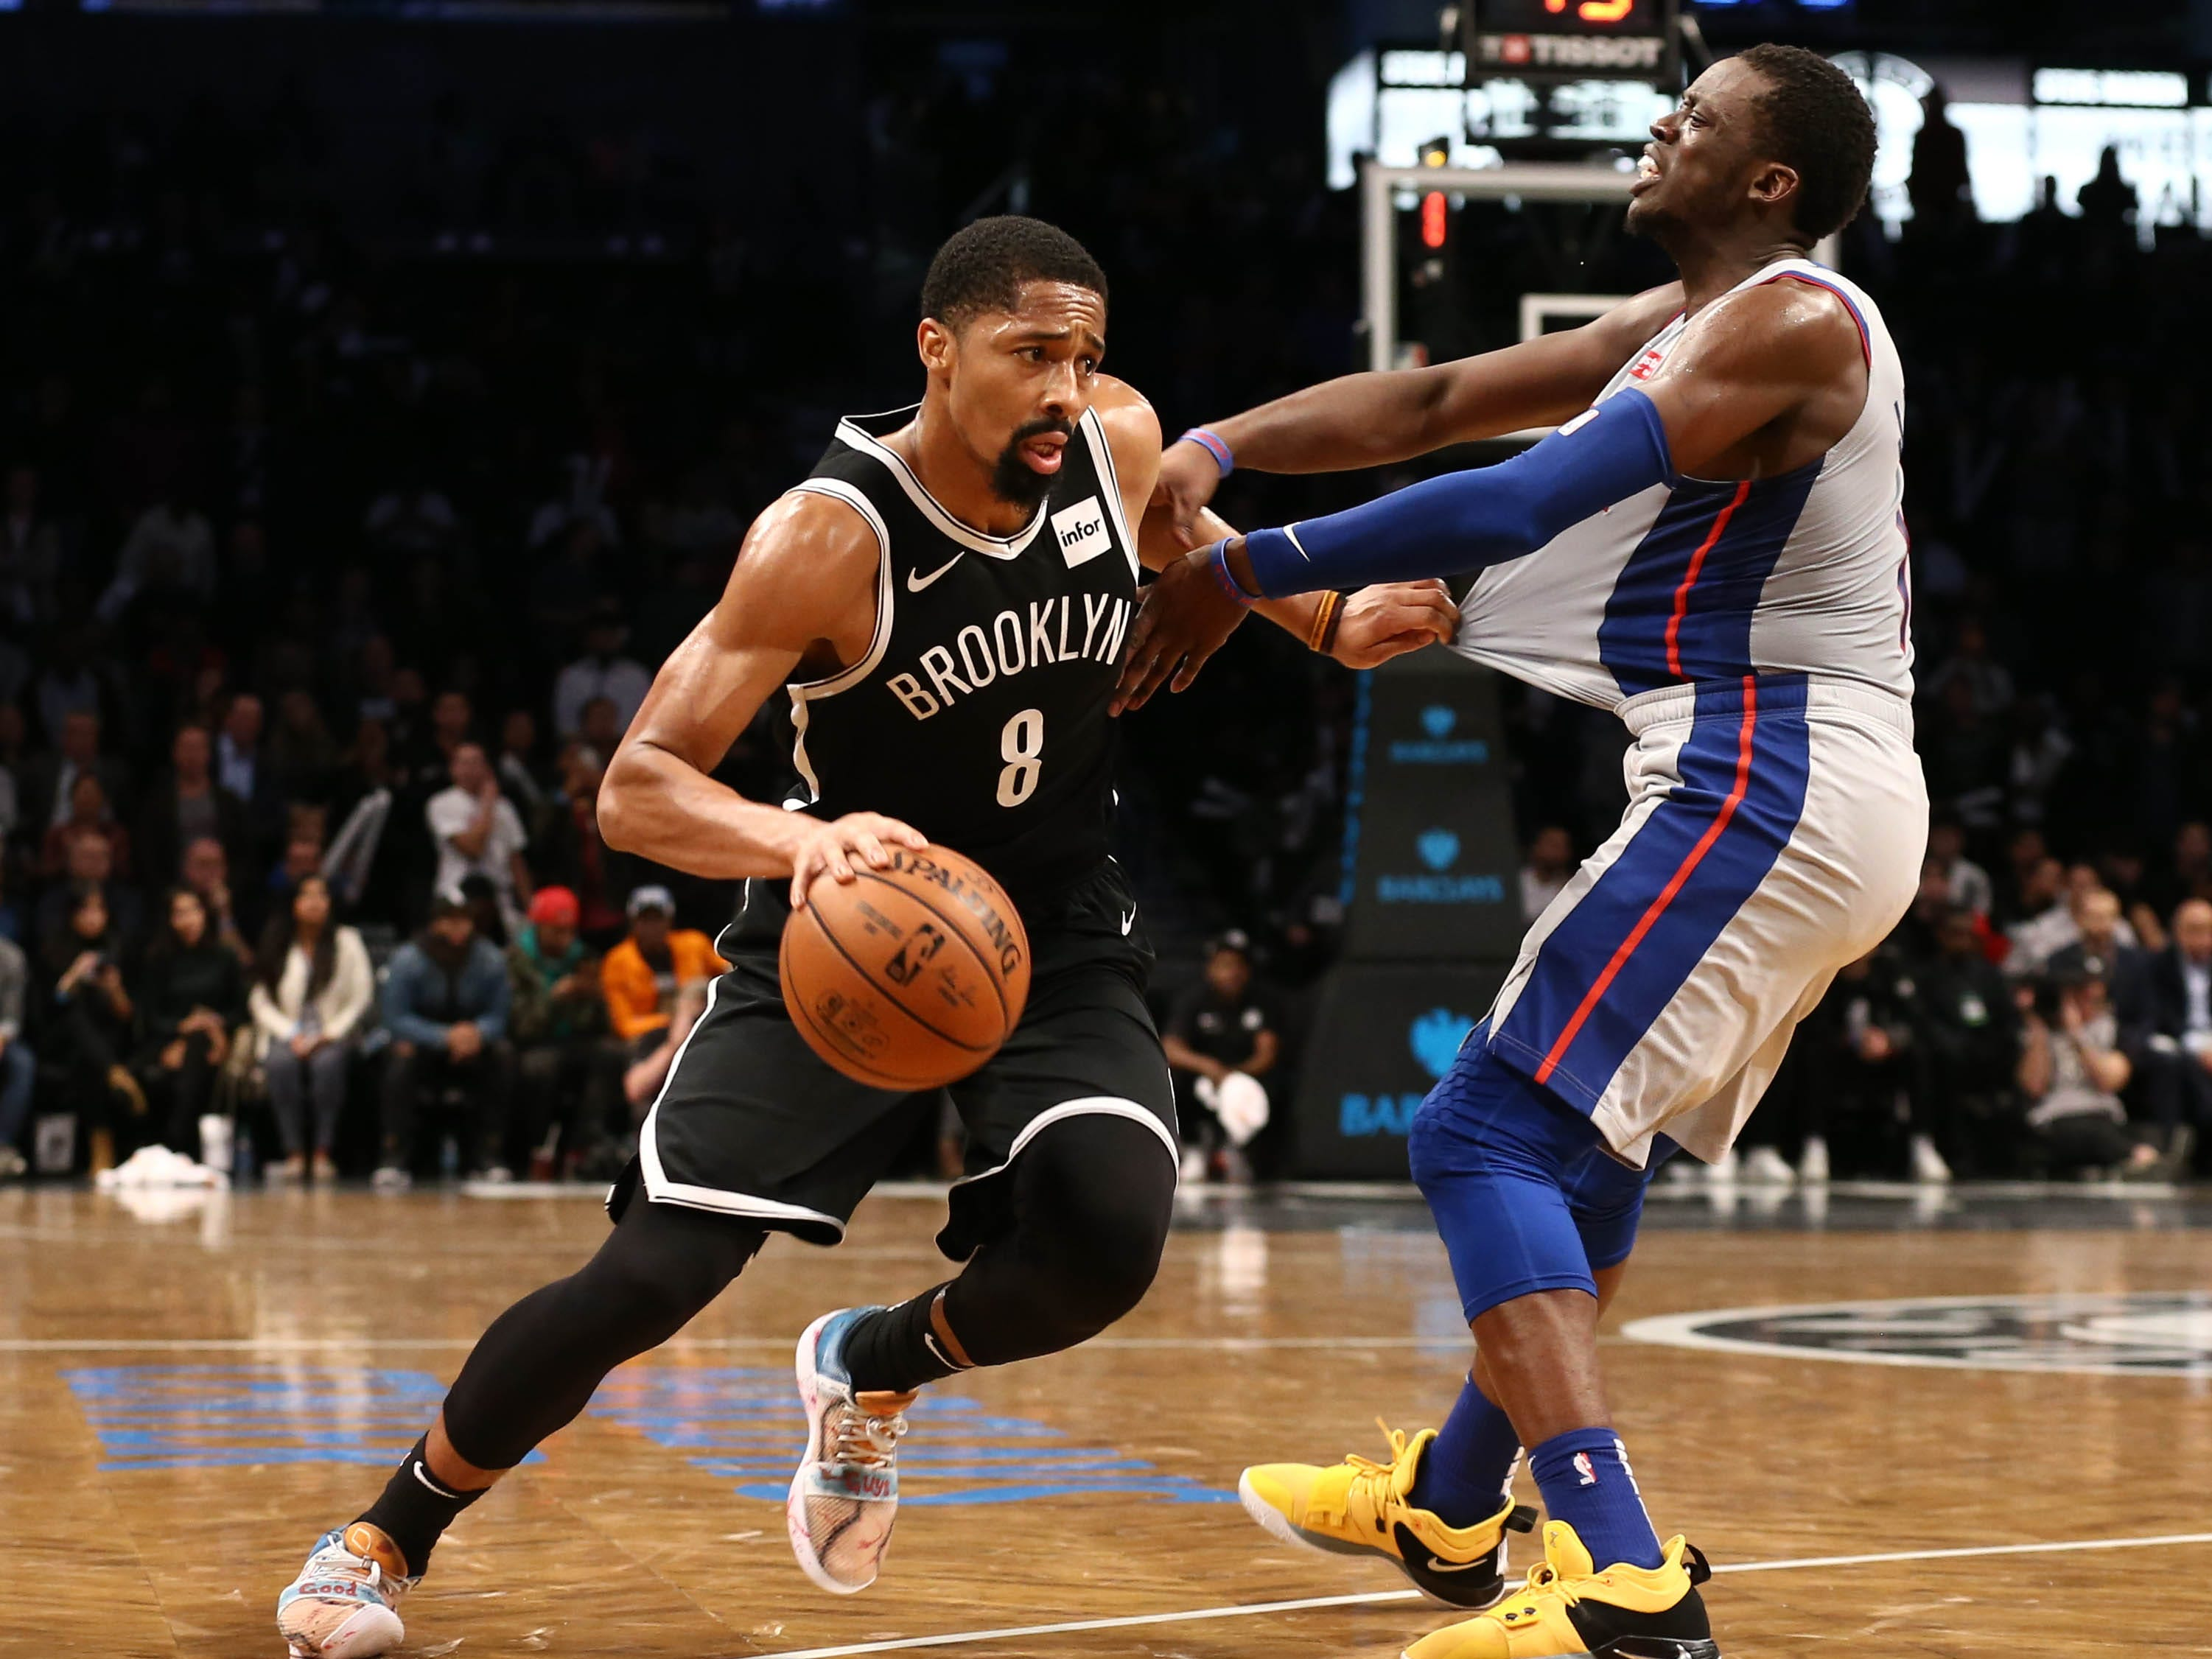 Brooklyn Nets guard Spencer Dinwiddie drives against Detroit Pistons guard Reggie Jackson in the fourth quarter Oct. 31, 2018.